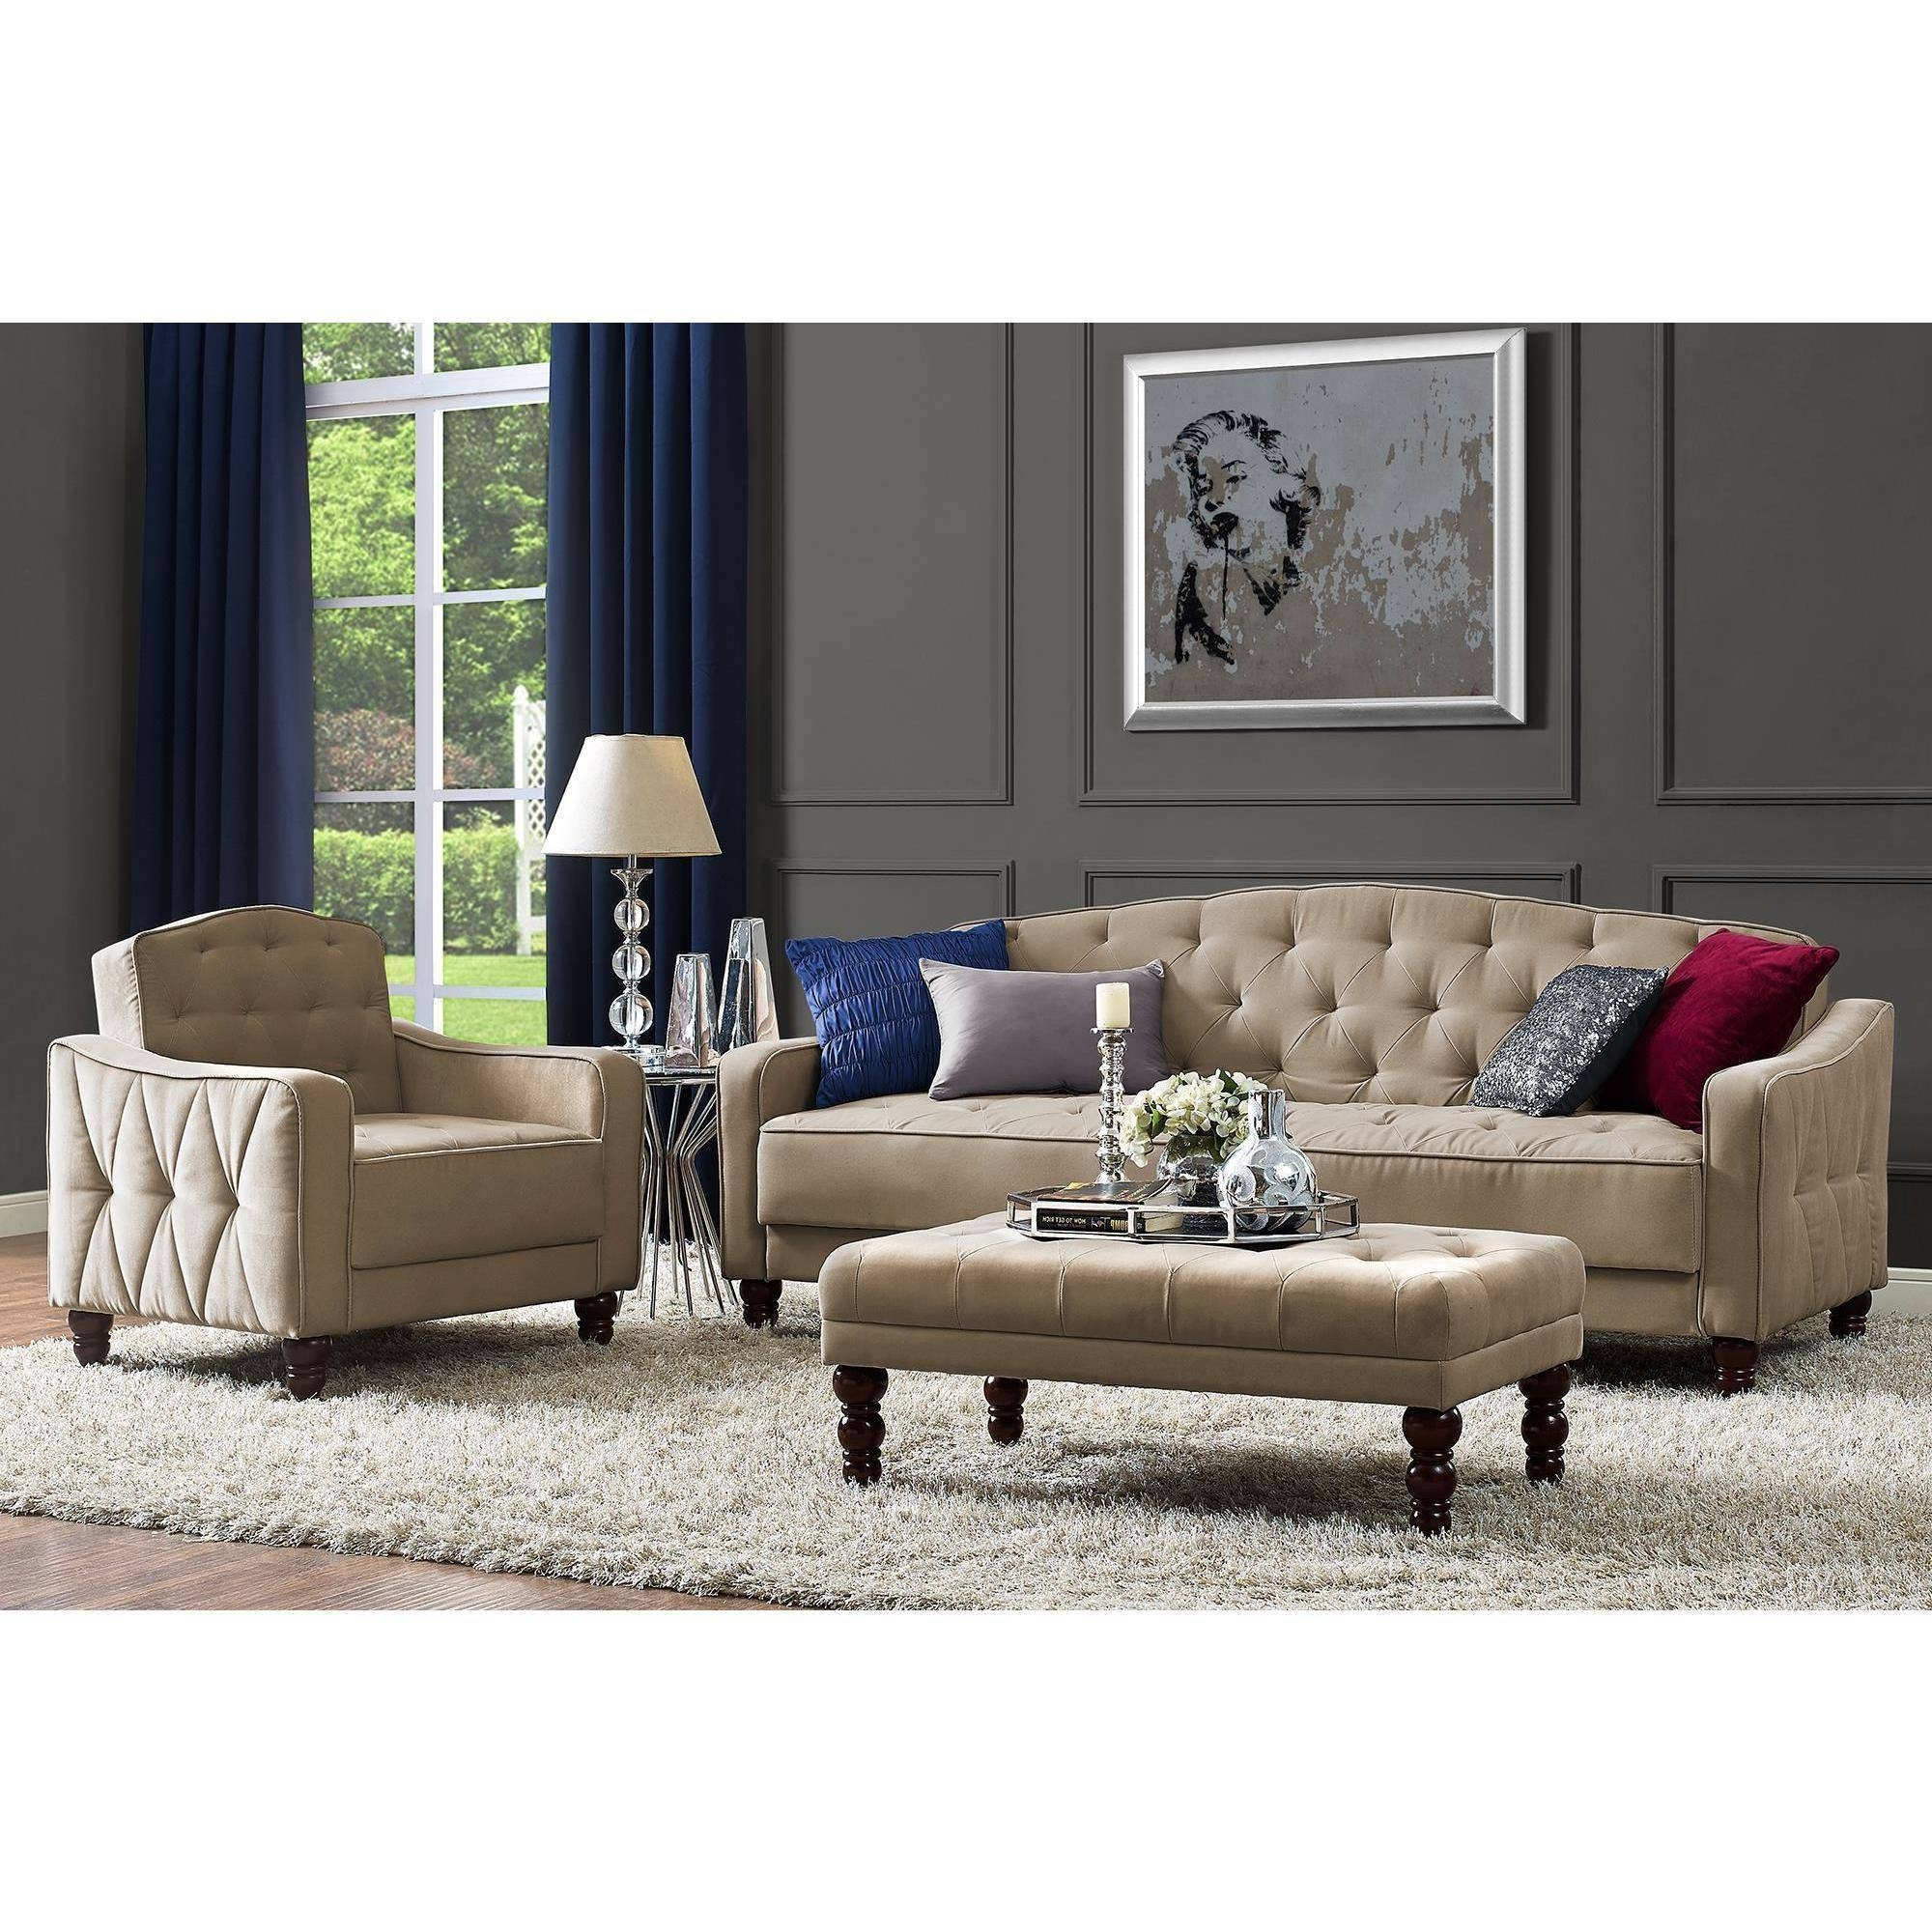 Well Known Greenville Nc Sectional Sofas Within Furniture : Klaussner Hubbard Sofa Chaise Lounge Sofa Vancouver (View 20 of 20)